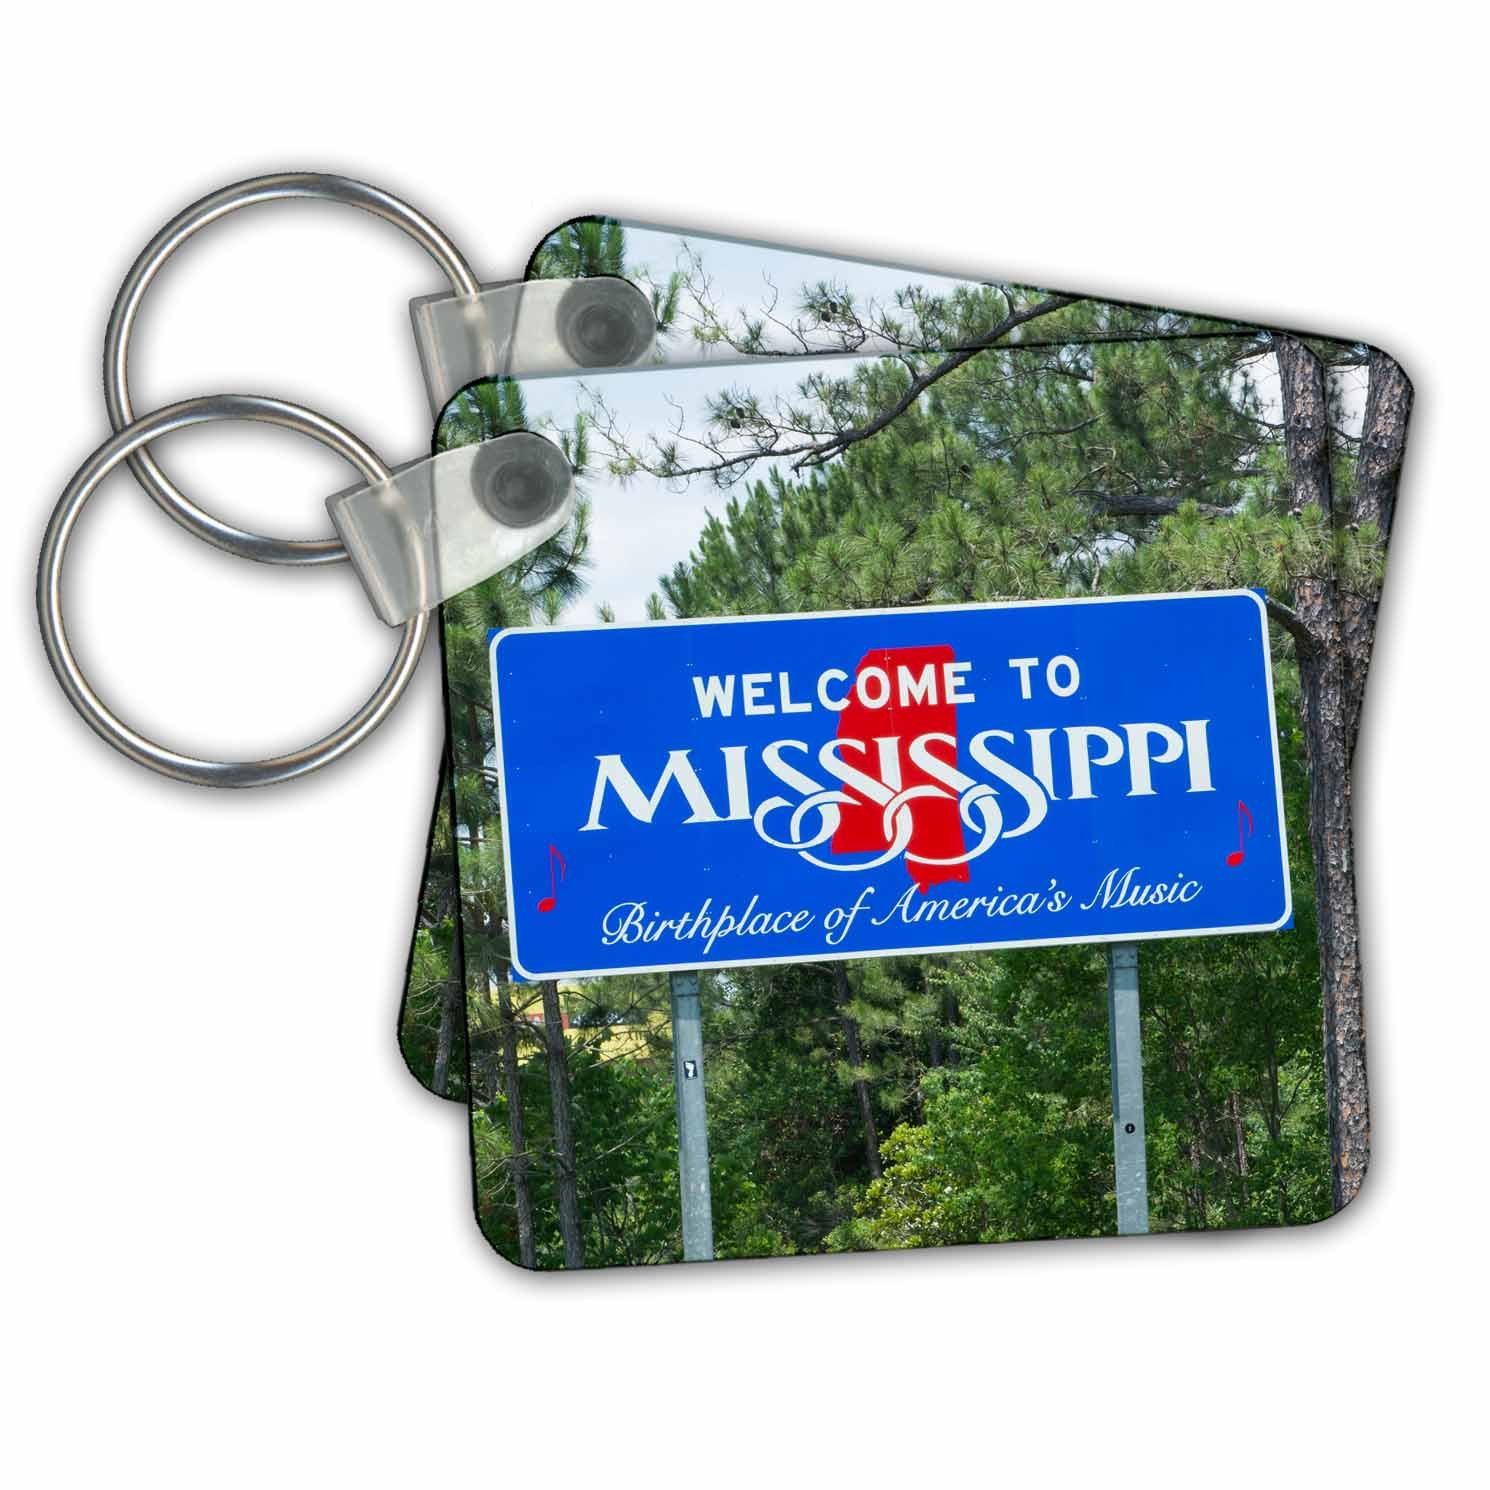 3dRose Sign For Welcome To Mississippi Birthplace Of American Music - Key Chains, 2.25'' x 2.25'', Set of 2 (kc_251177_1)